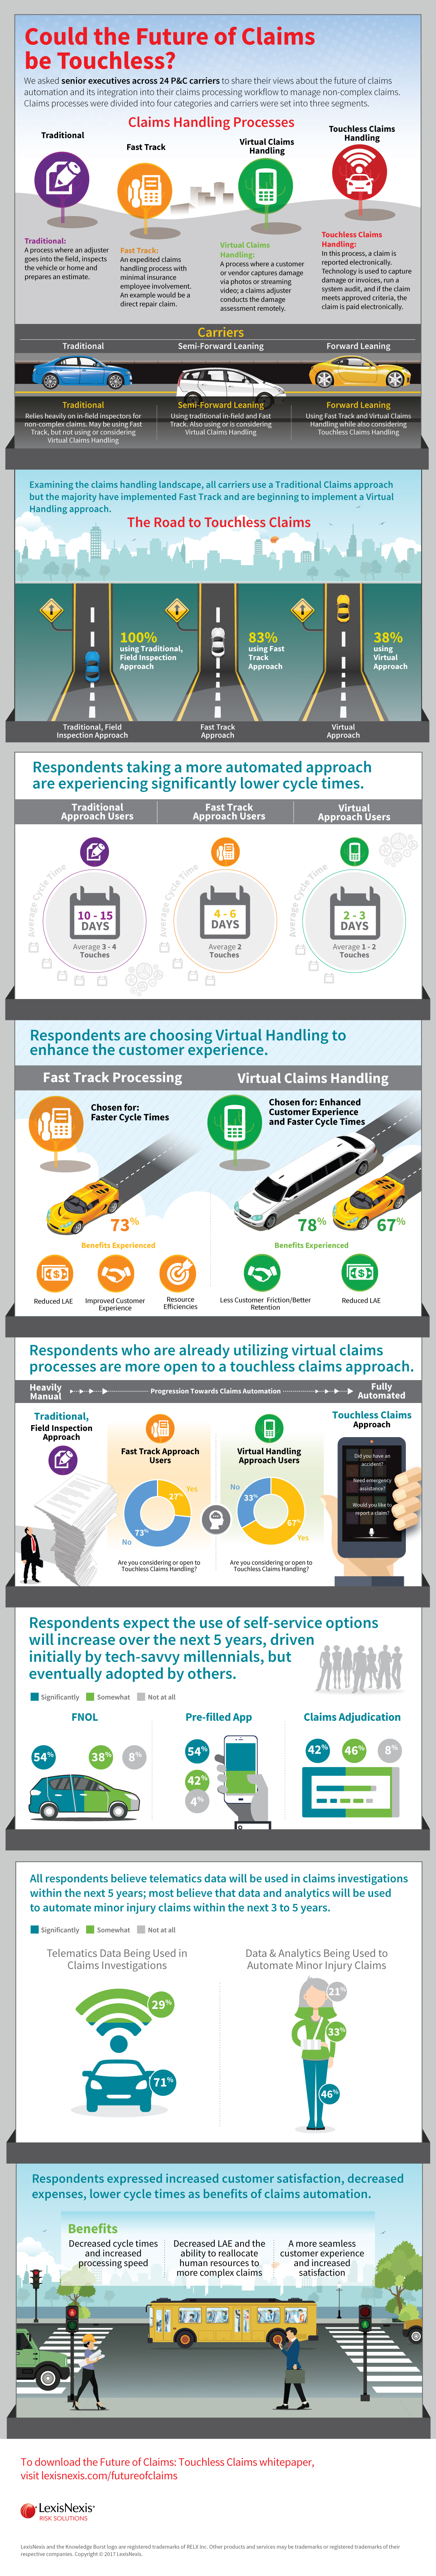 Touchless_Claims_Infographic_03_21